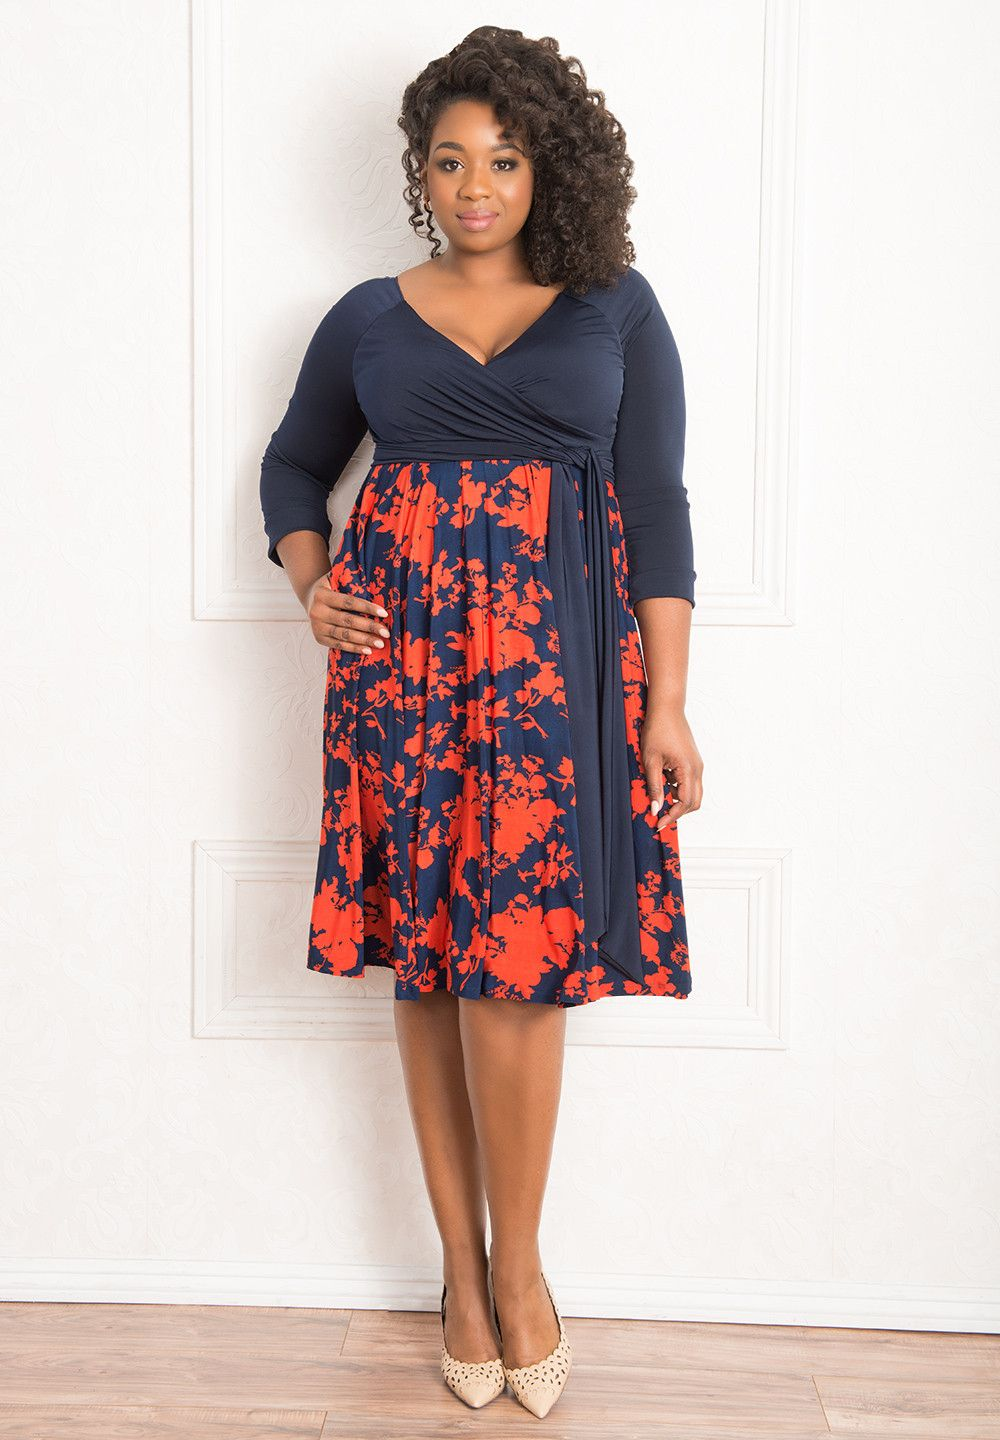 5475b31a865 bellissimadress blossom blue orange Plus Size Clothing Stores